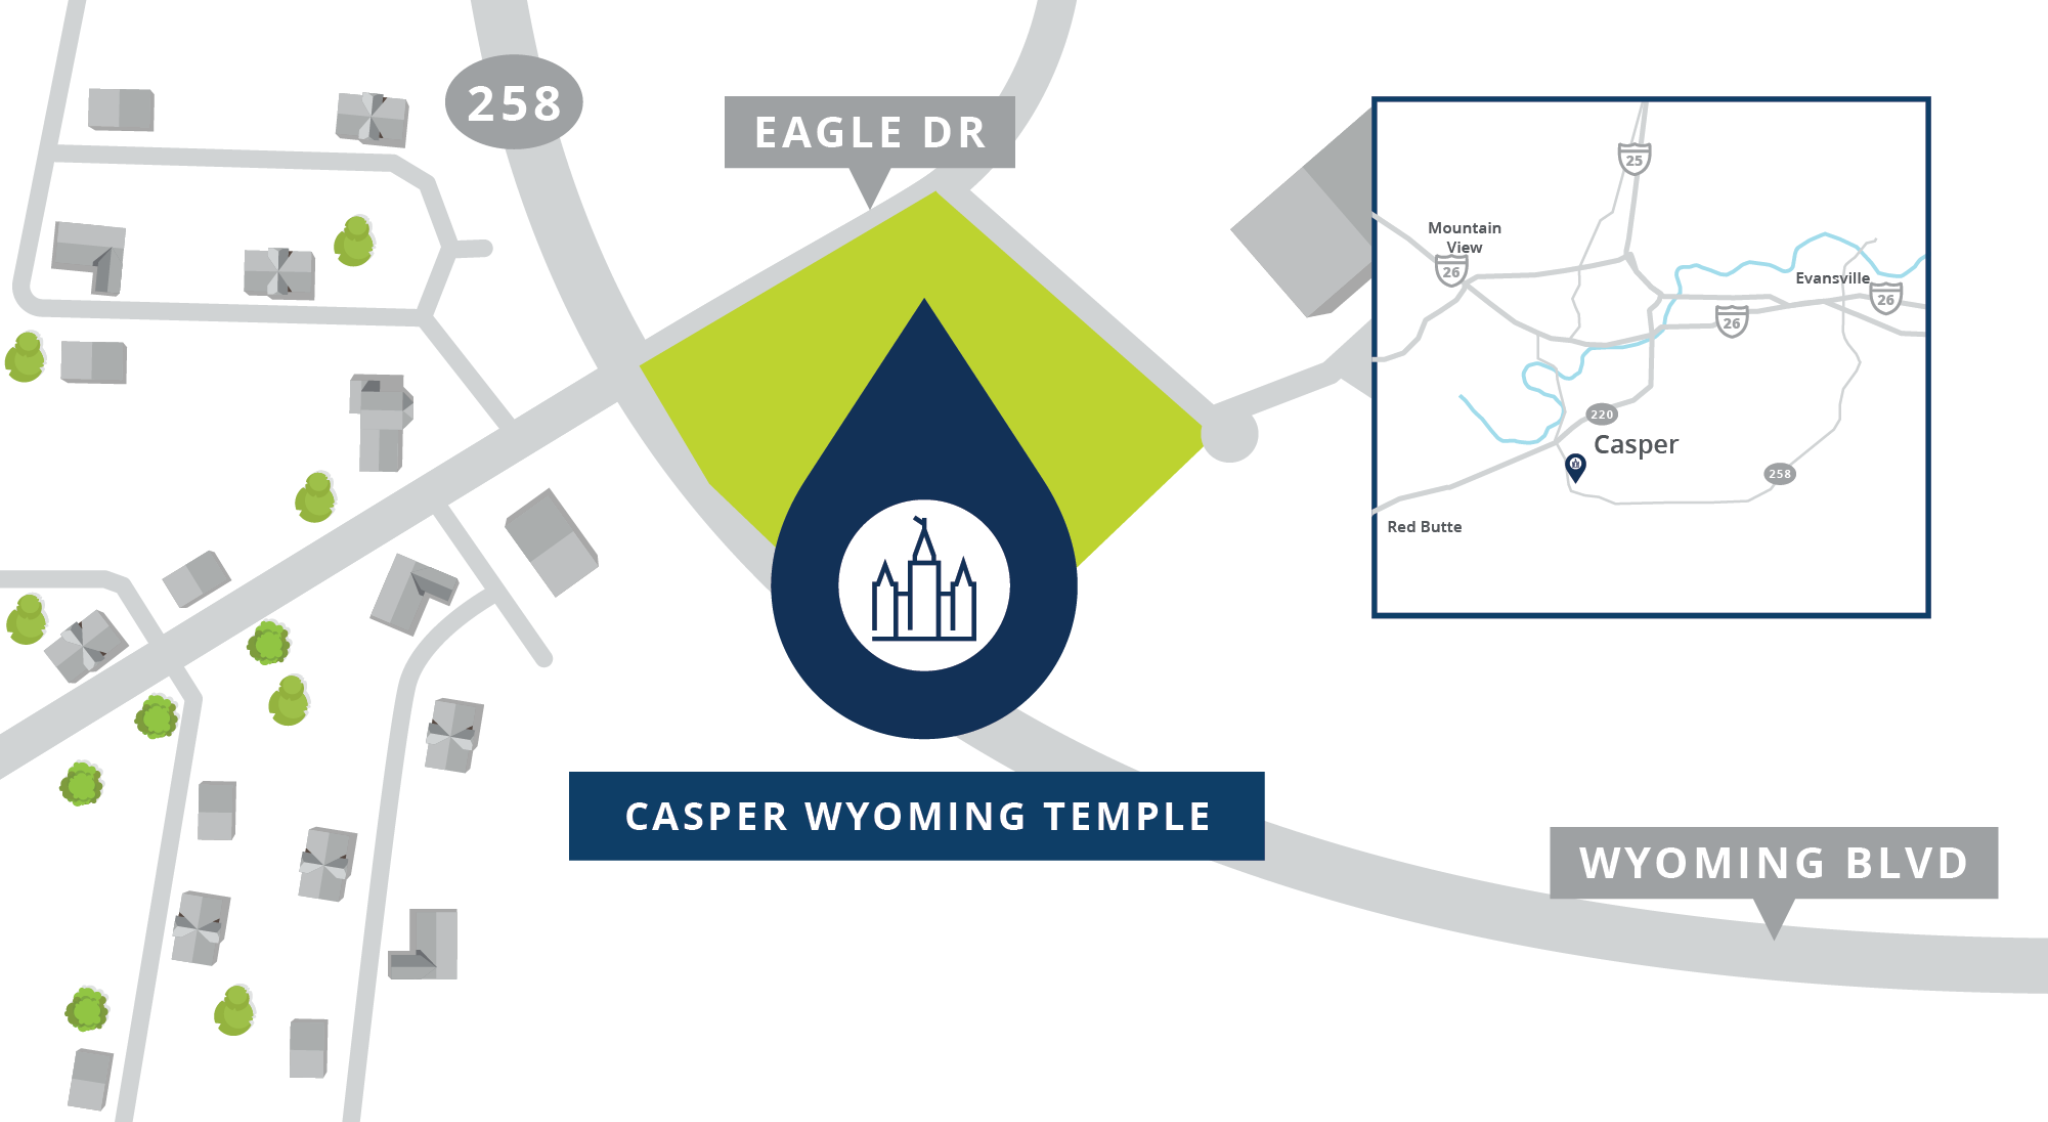 A map shows the location of the Casper Wyoming Temple.